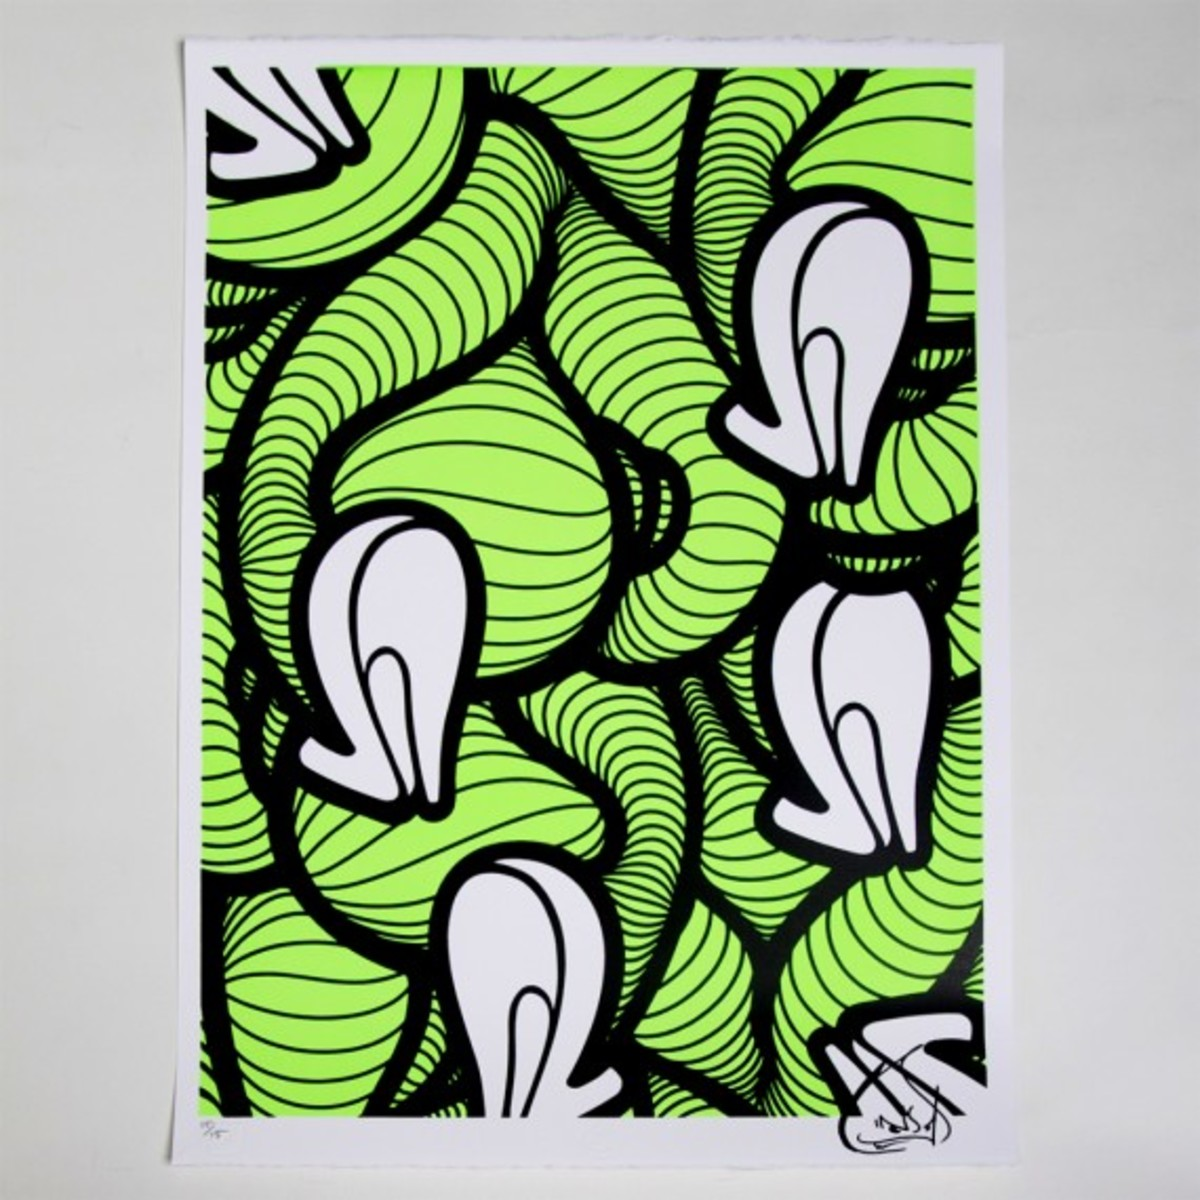 sf-special-edition-prints--neon-green-inverted